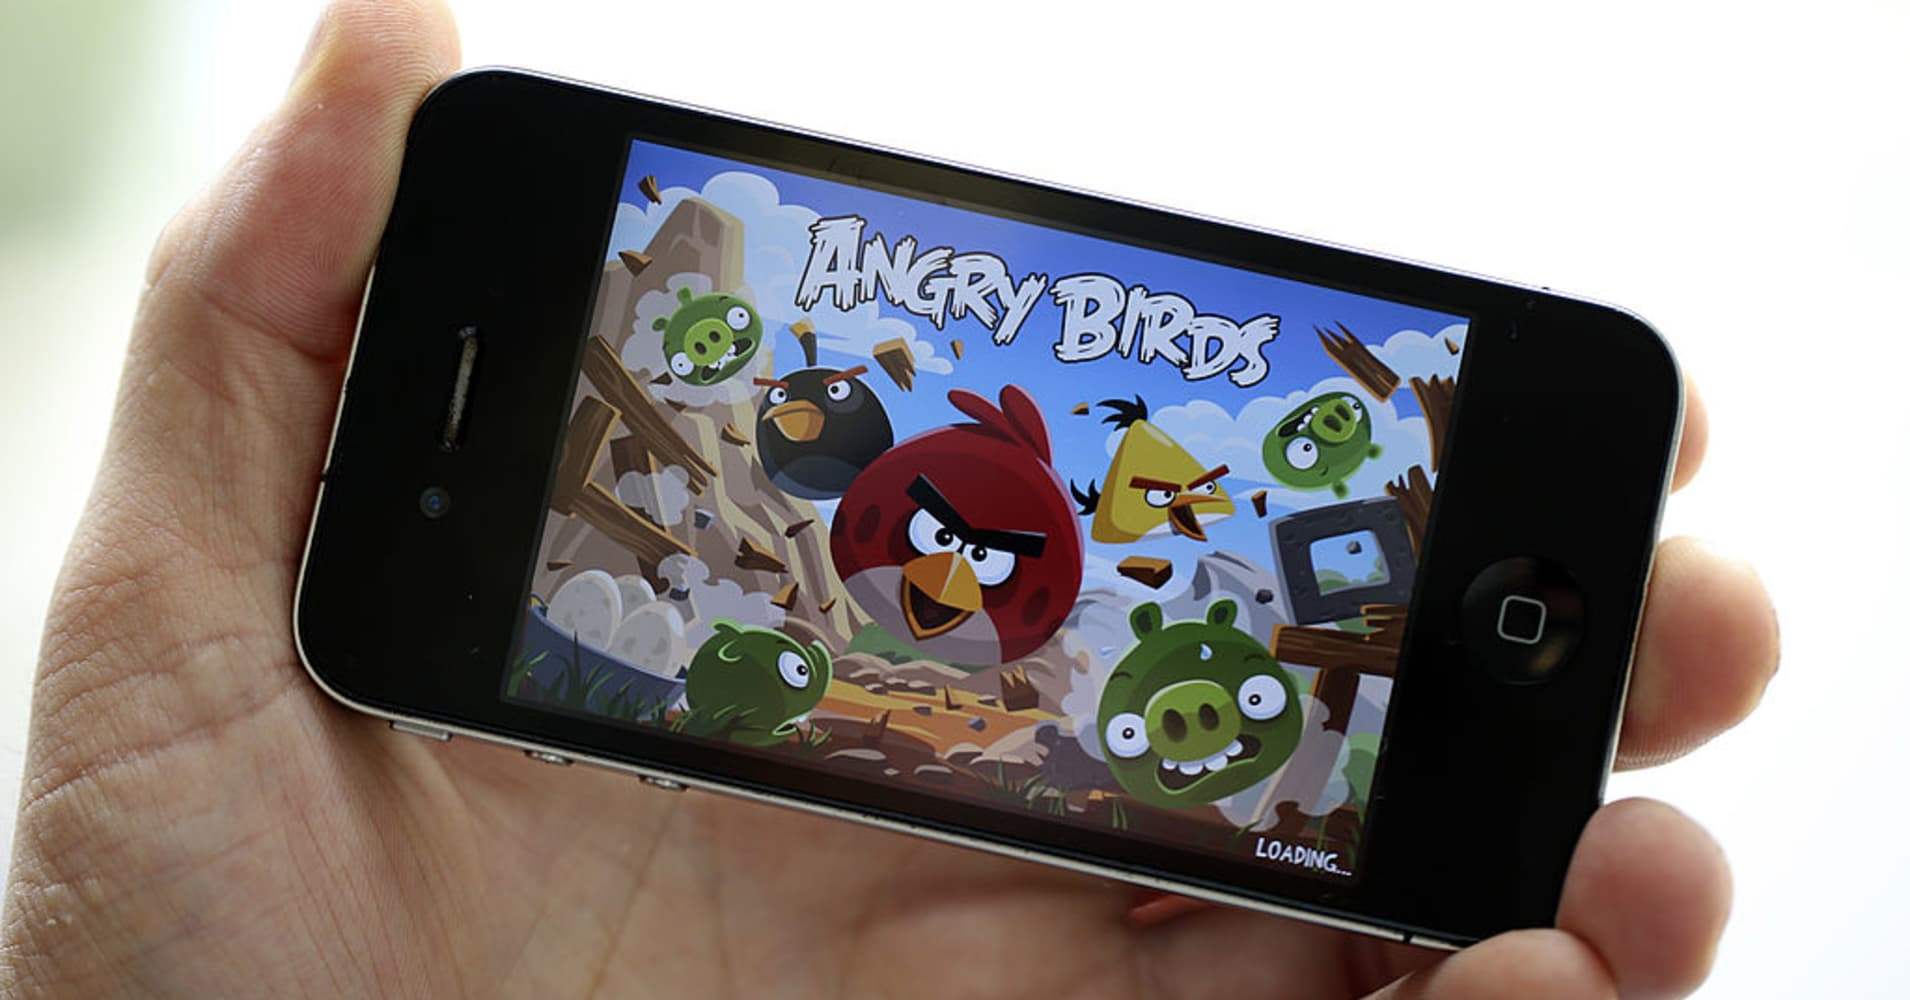 Creator talks about The Angry Birds Movie and the future of the popular game